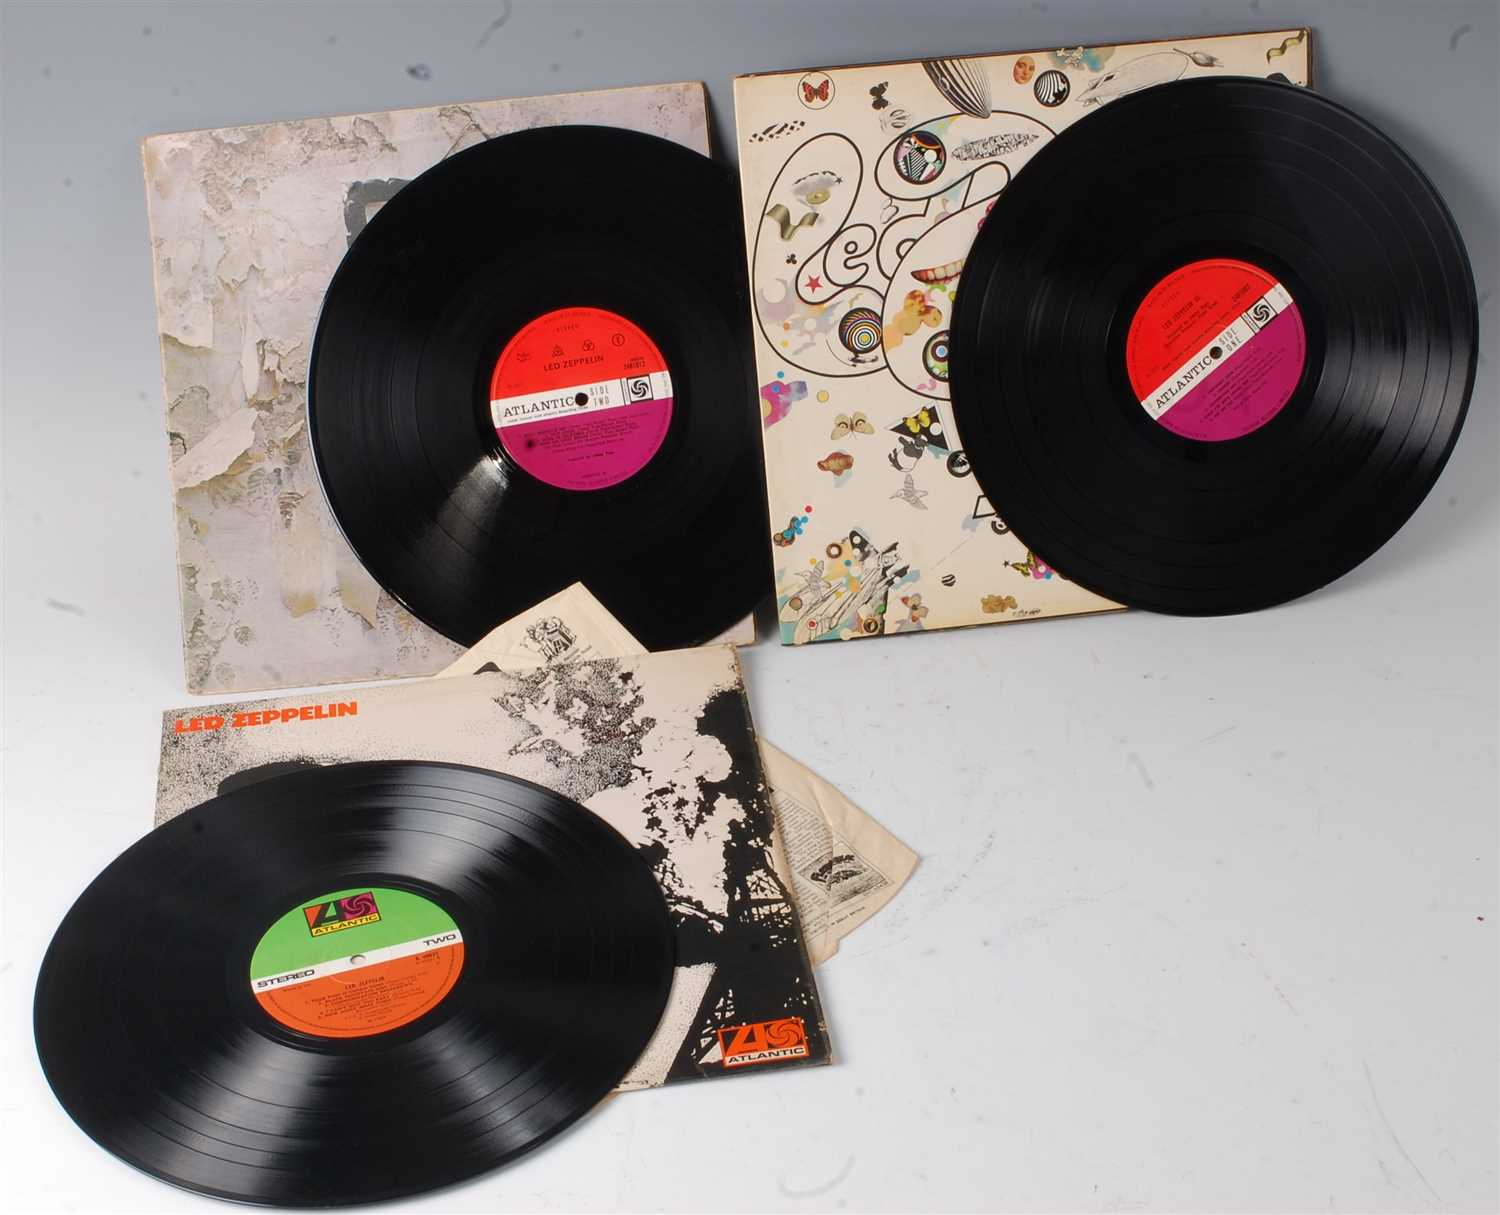 Lot 709 - Led Zeppelin